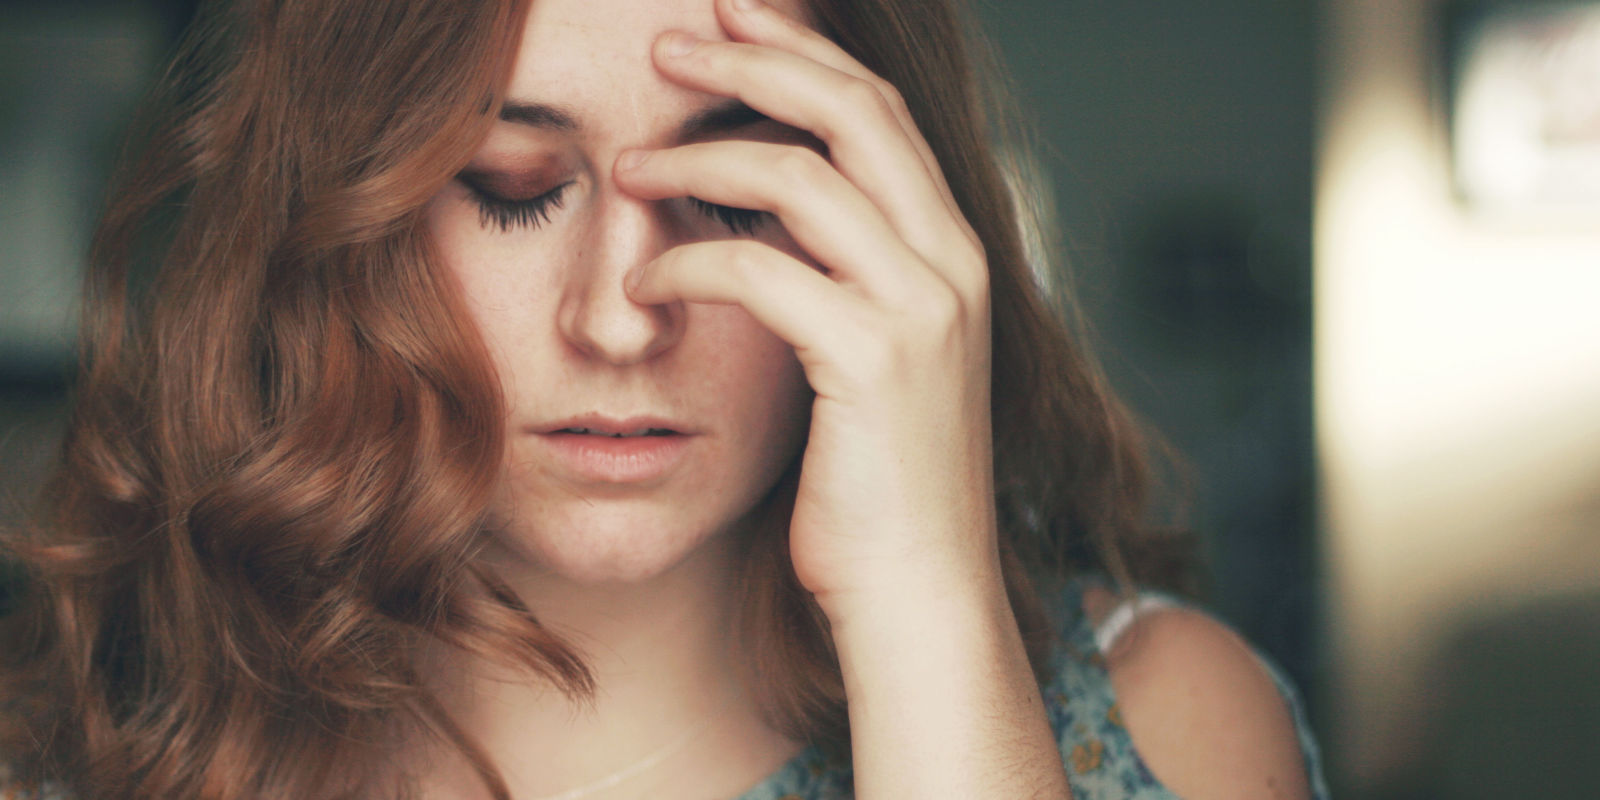 How to stop worrying? 6 practical tips for HSP